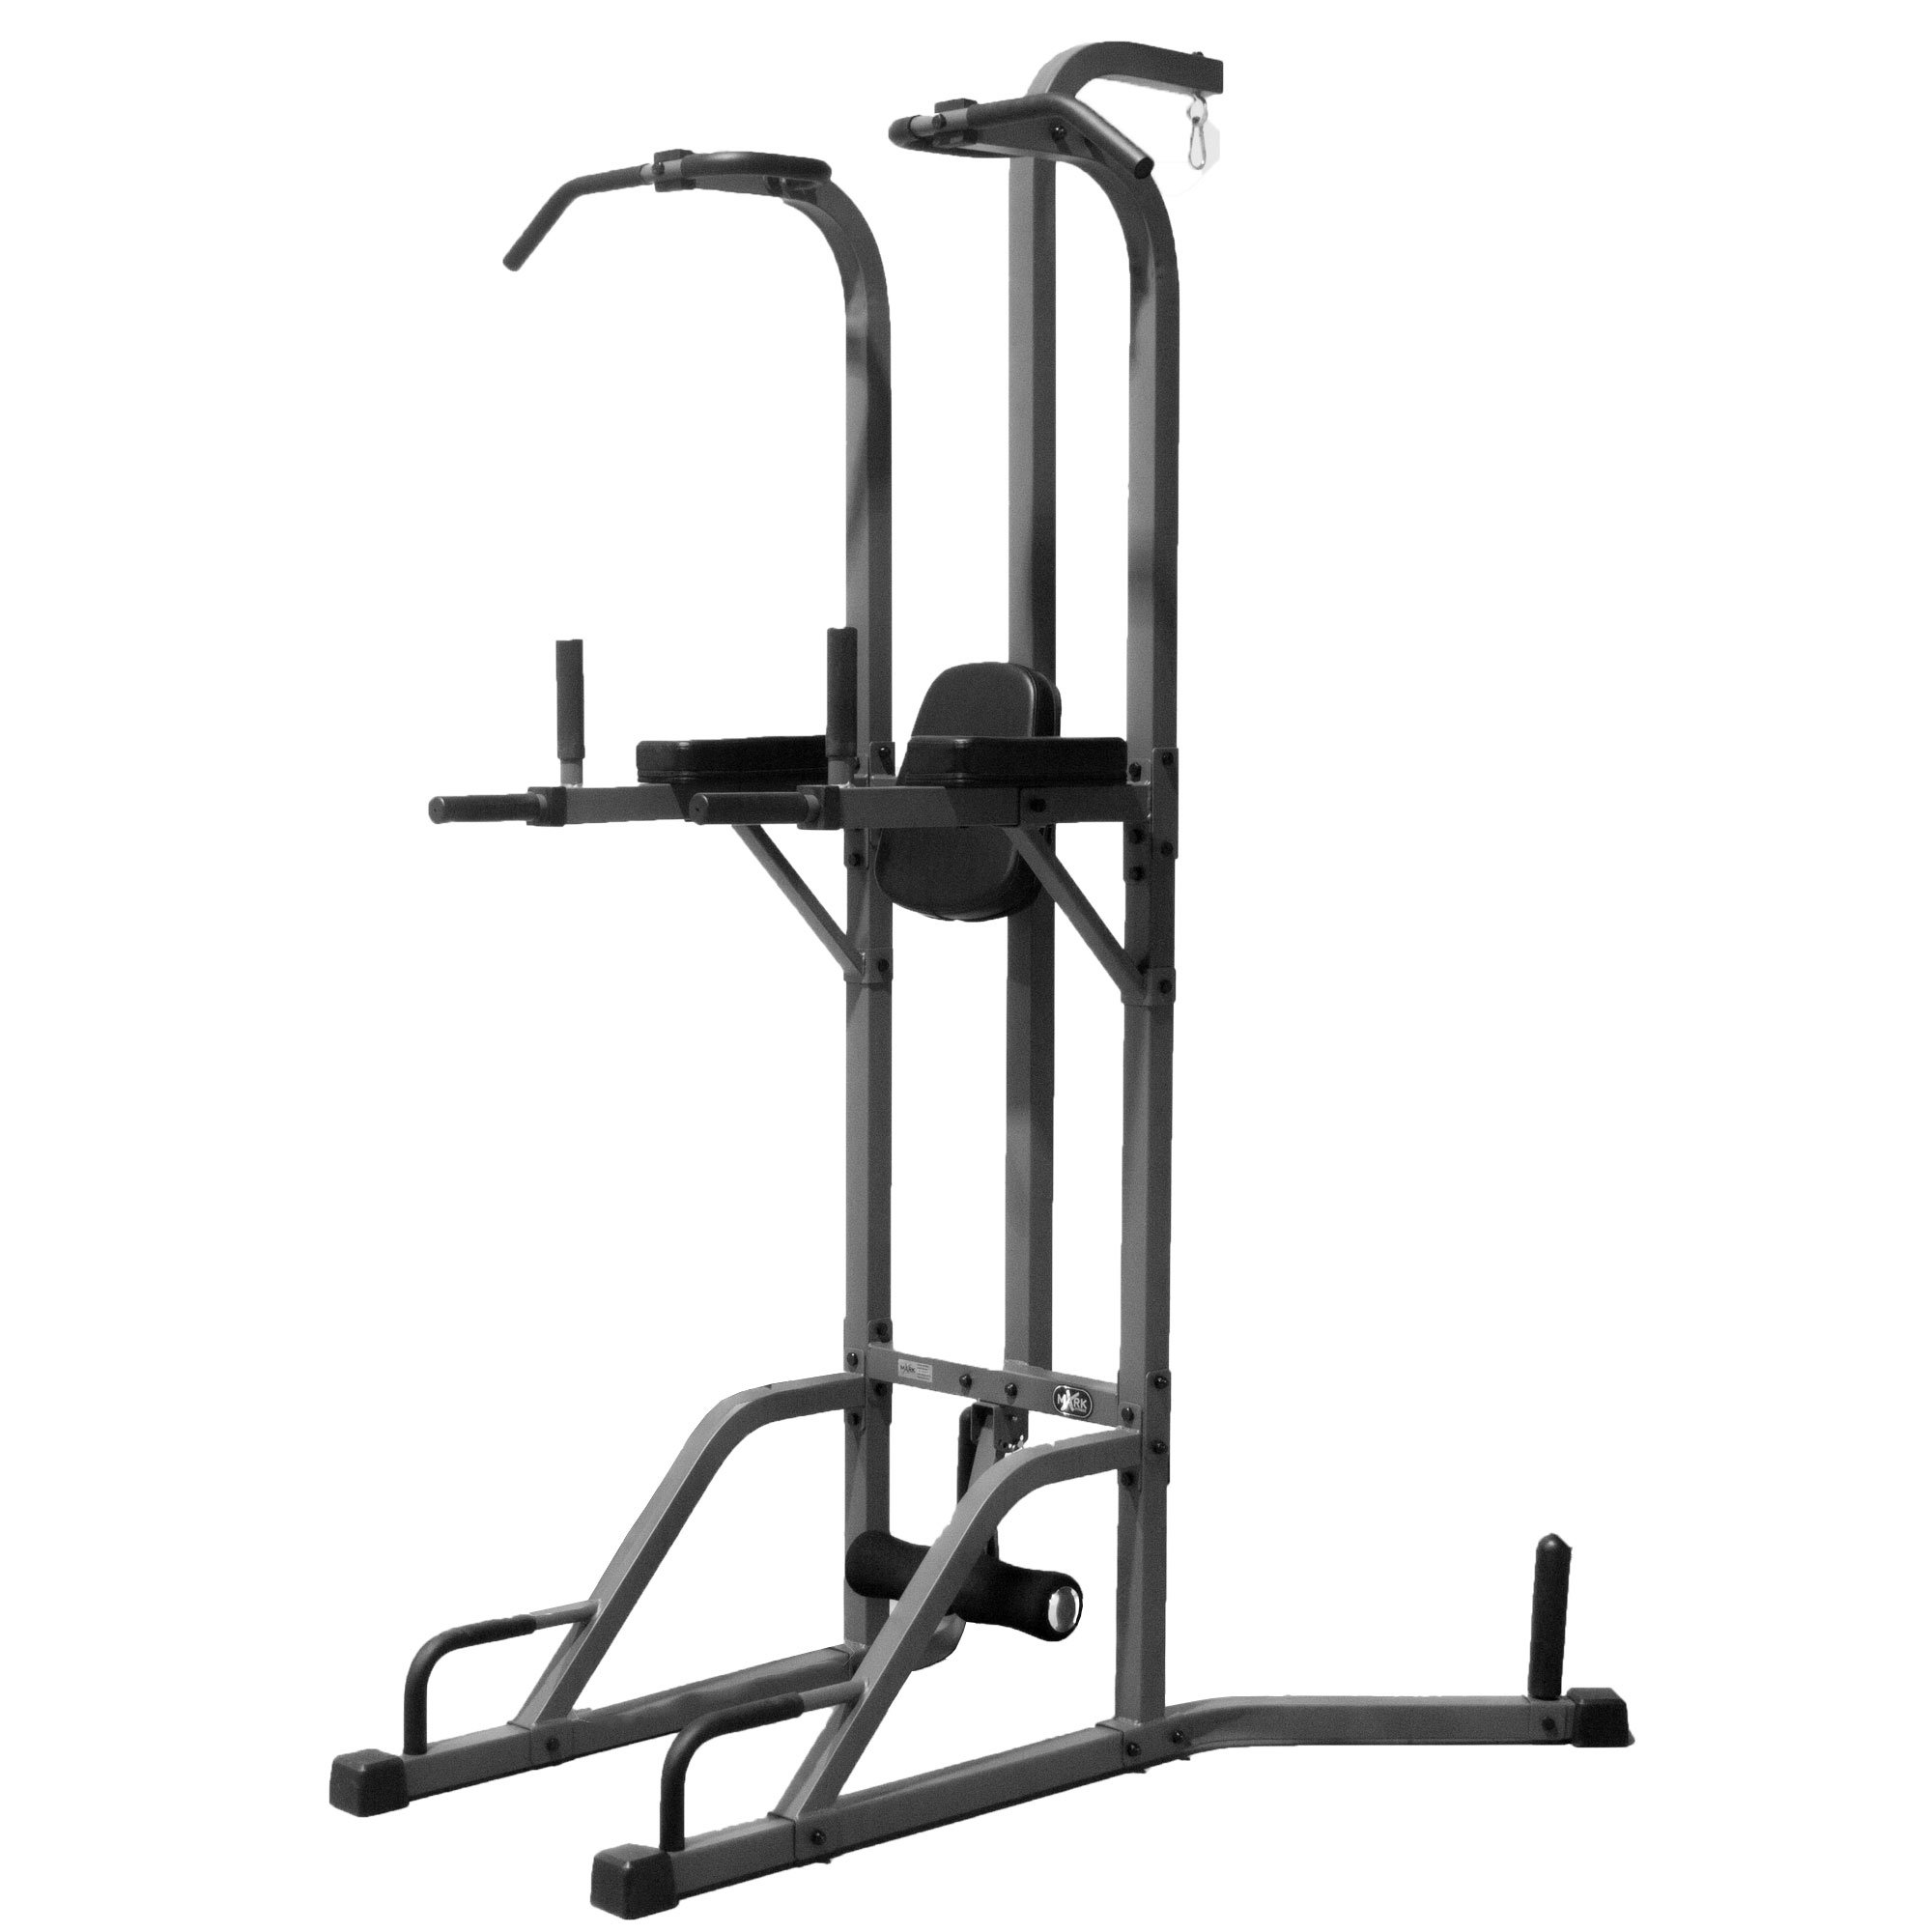 XMark Deluxe Power Tower and Heavy Bag Stand XM-2842 by XMark Fitness (Image #4)